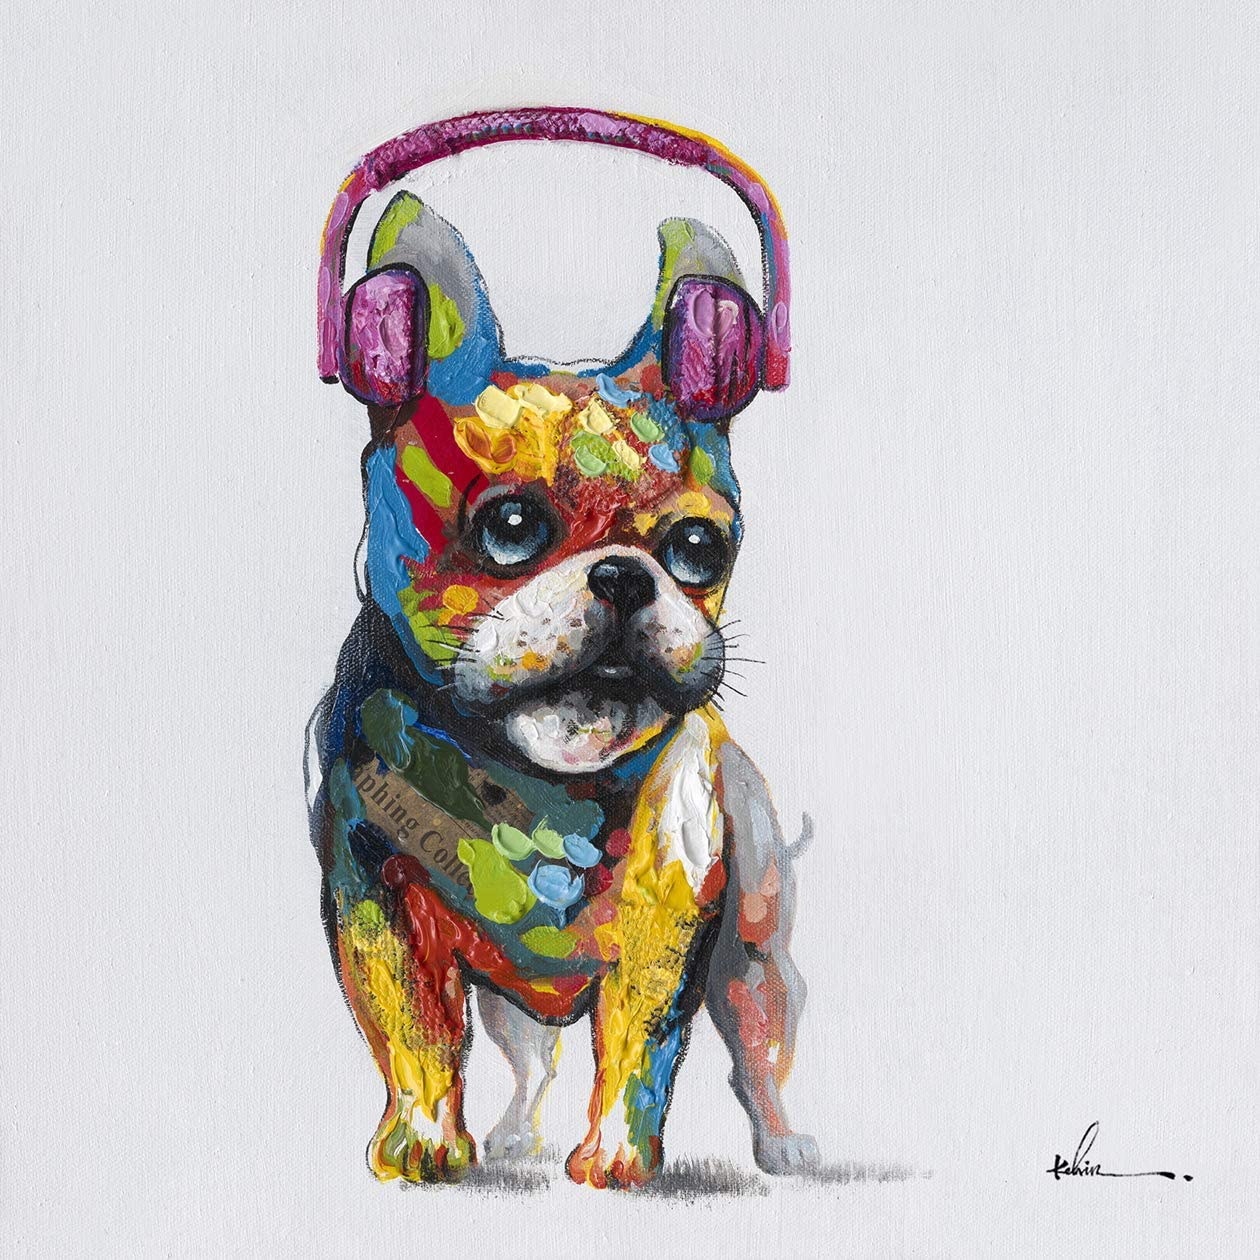 French Bulldog Headphones Wall Art Modern Printing On Canvas Painting with Hand Embellished Home D cor 28 x 28